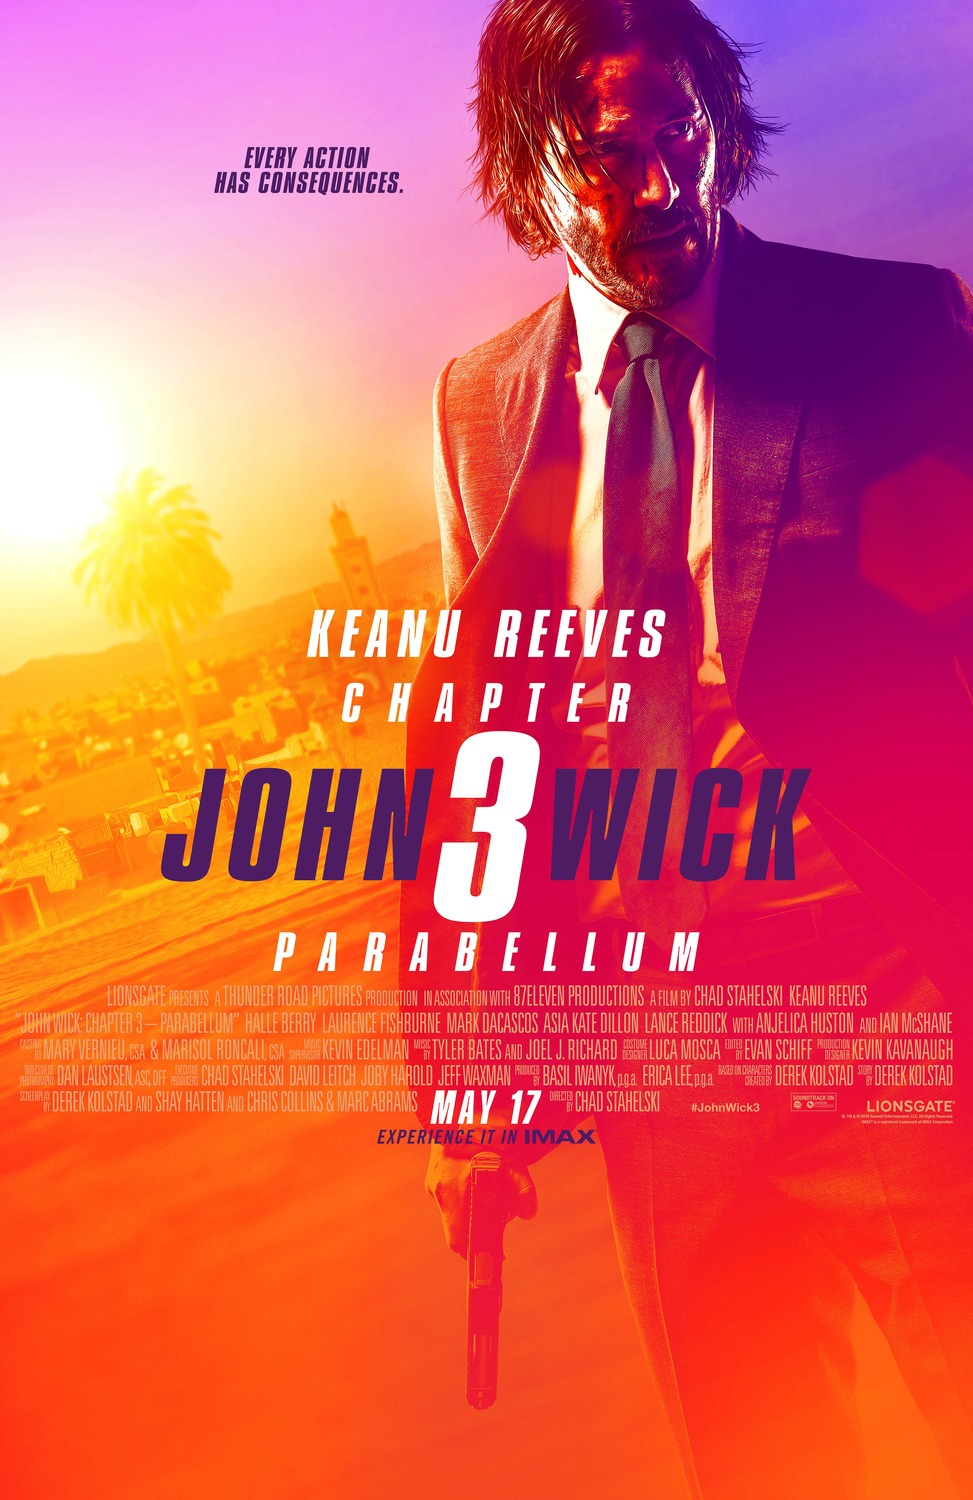 John Wick Chapter 3 movie poster